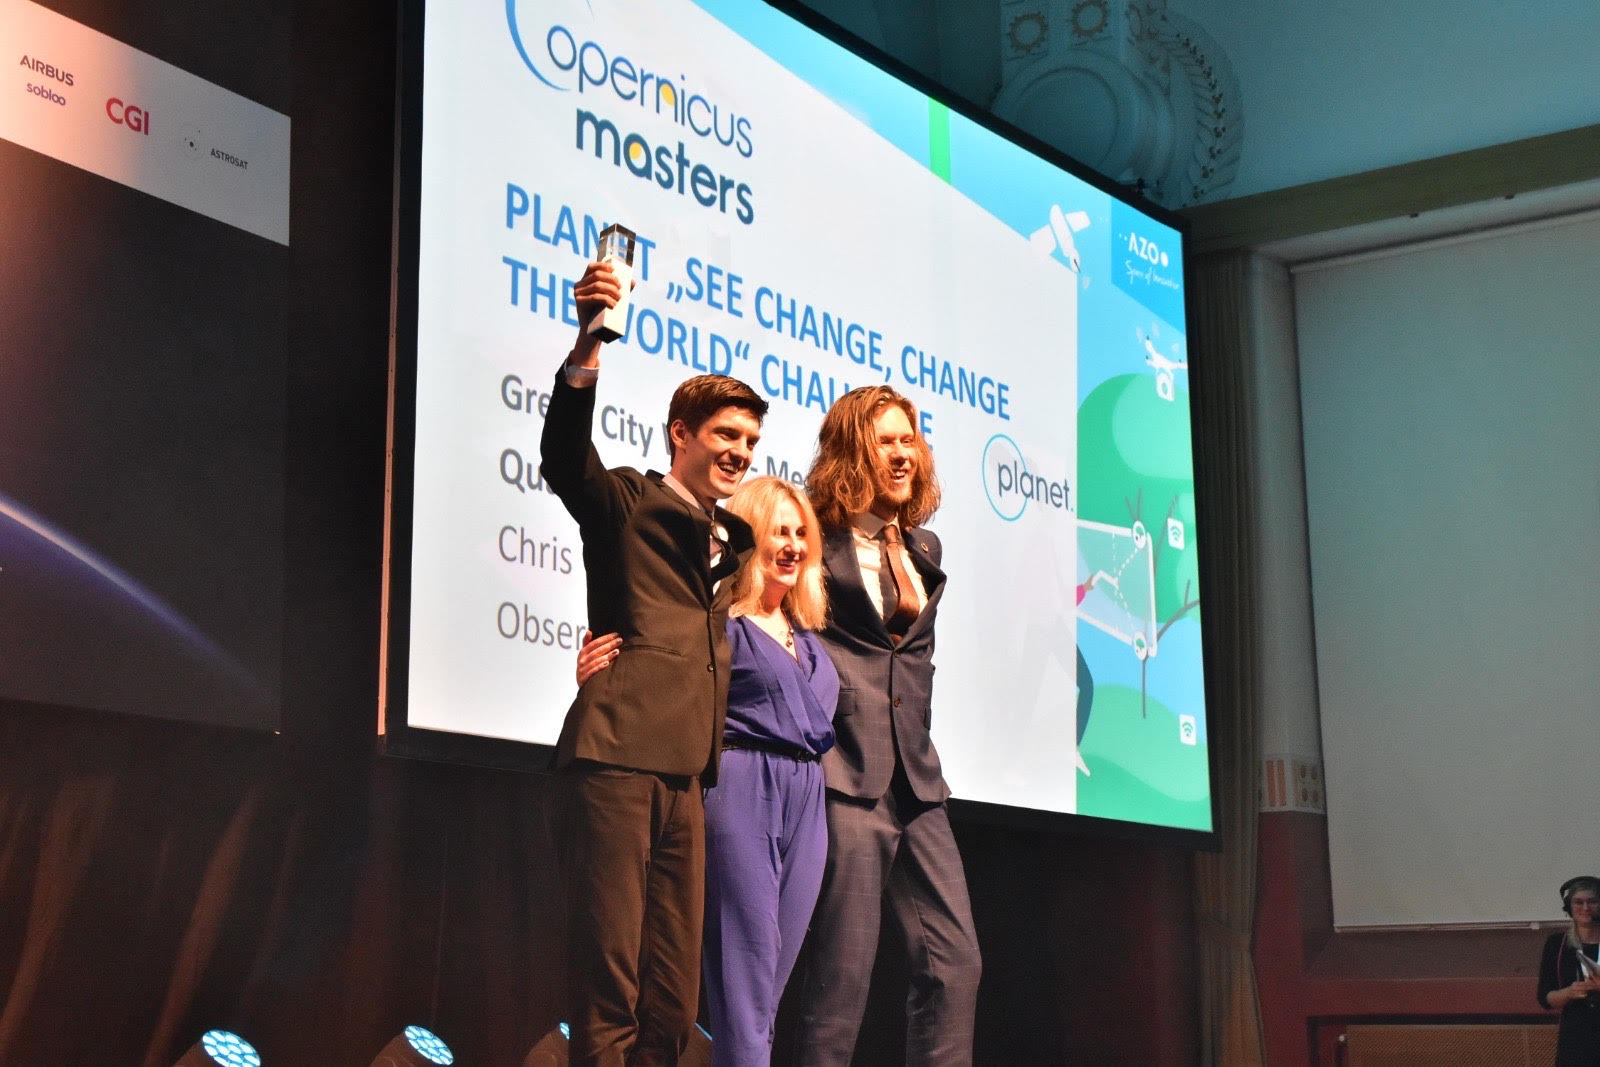 Planet reveals the winners of their 2019 Copernicus Masters Challenge at the Space Oscars. Photo provided by Agnieszka Lukaszczyk, Planet's senior director of European affairs.